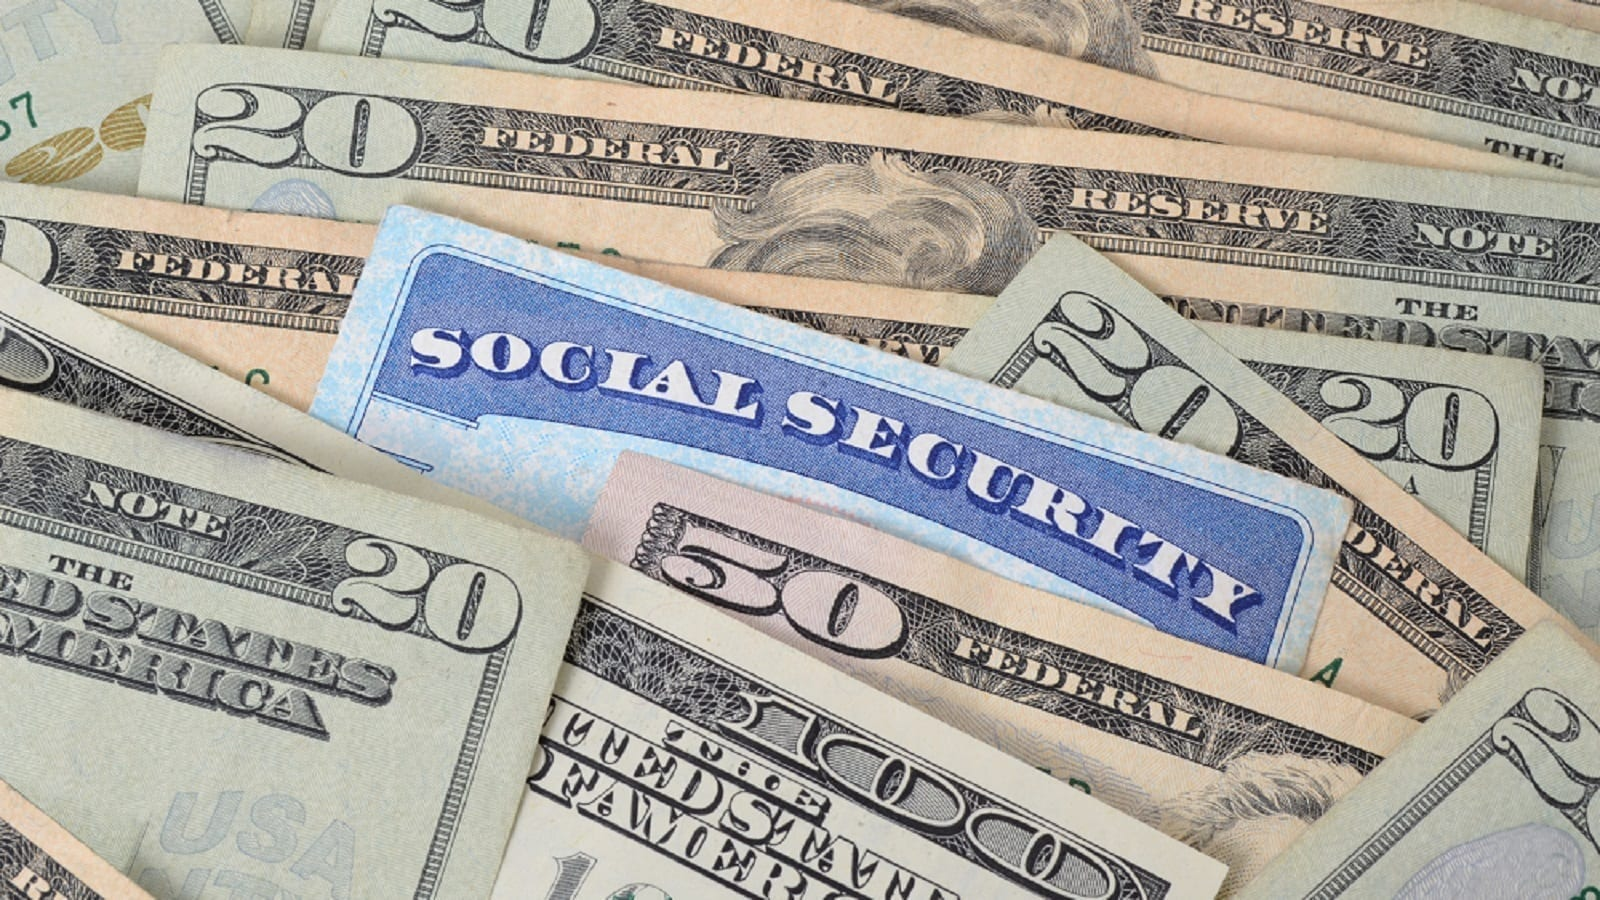 Social Security Card With Money Stock Photo